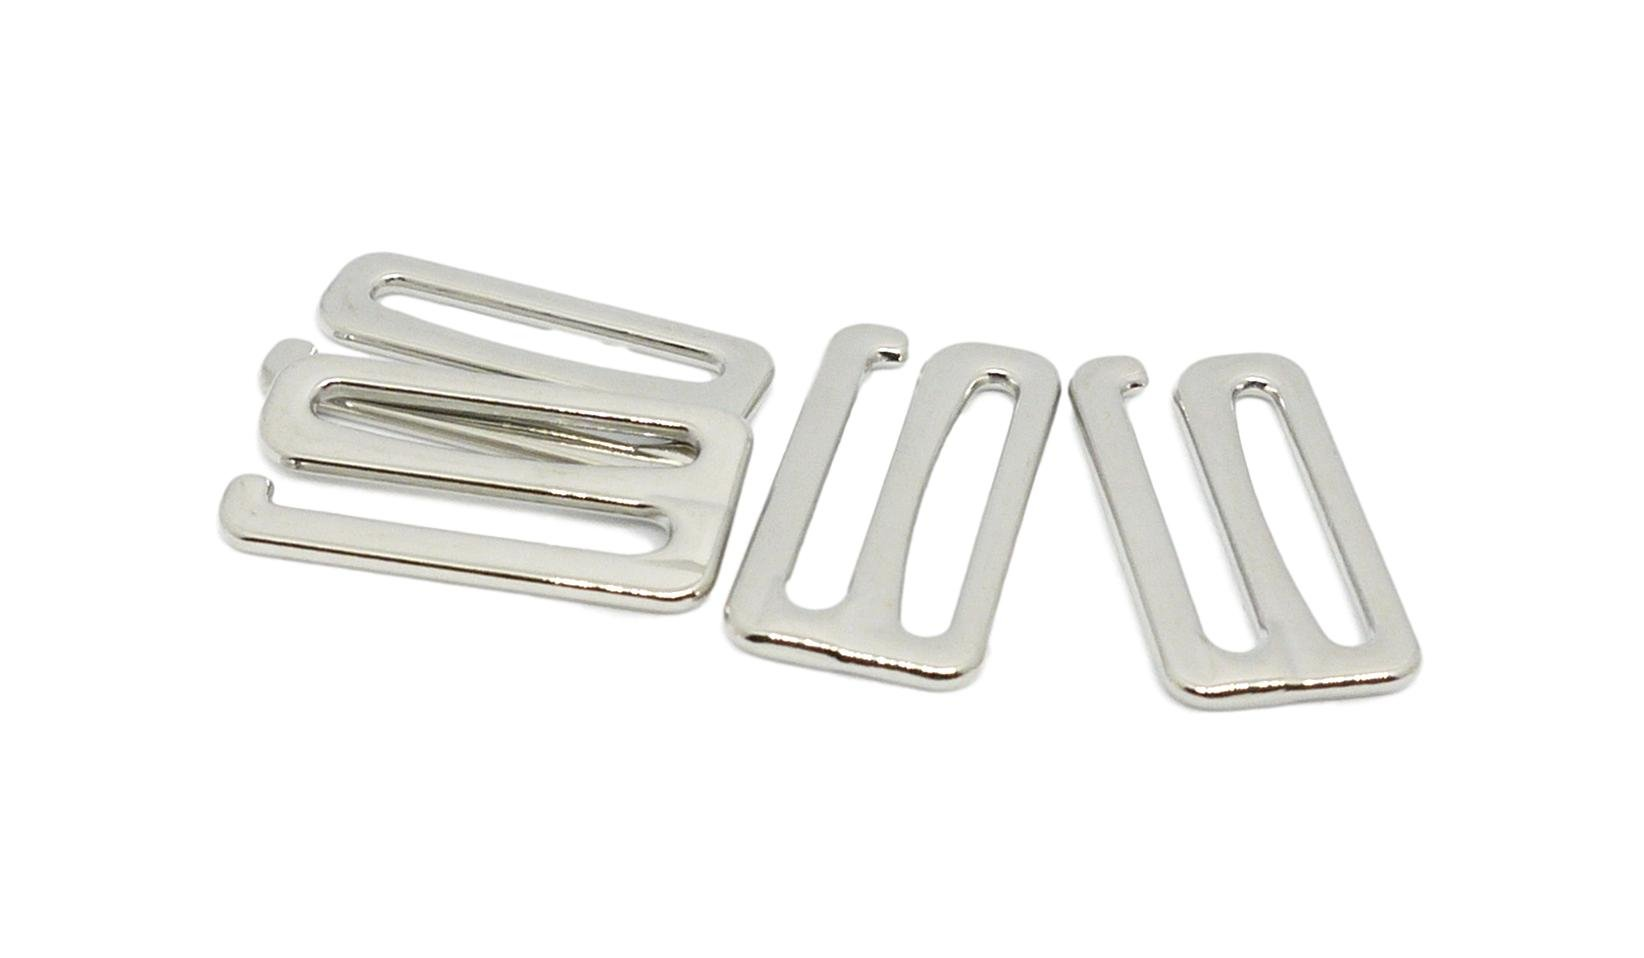 Porcelynne Silver Metal Alloy Replacement Bra Strap Slide Hook - 1'' (25mm) Opening - 10 Pairs (20 Pieces) by Porcelynne